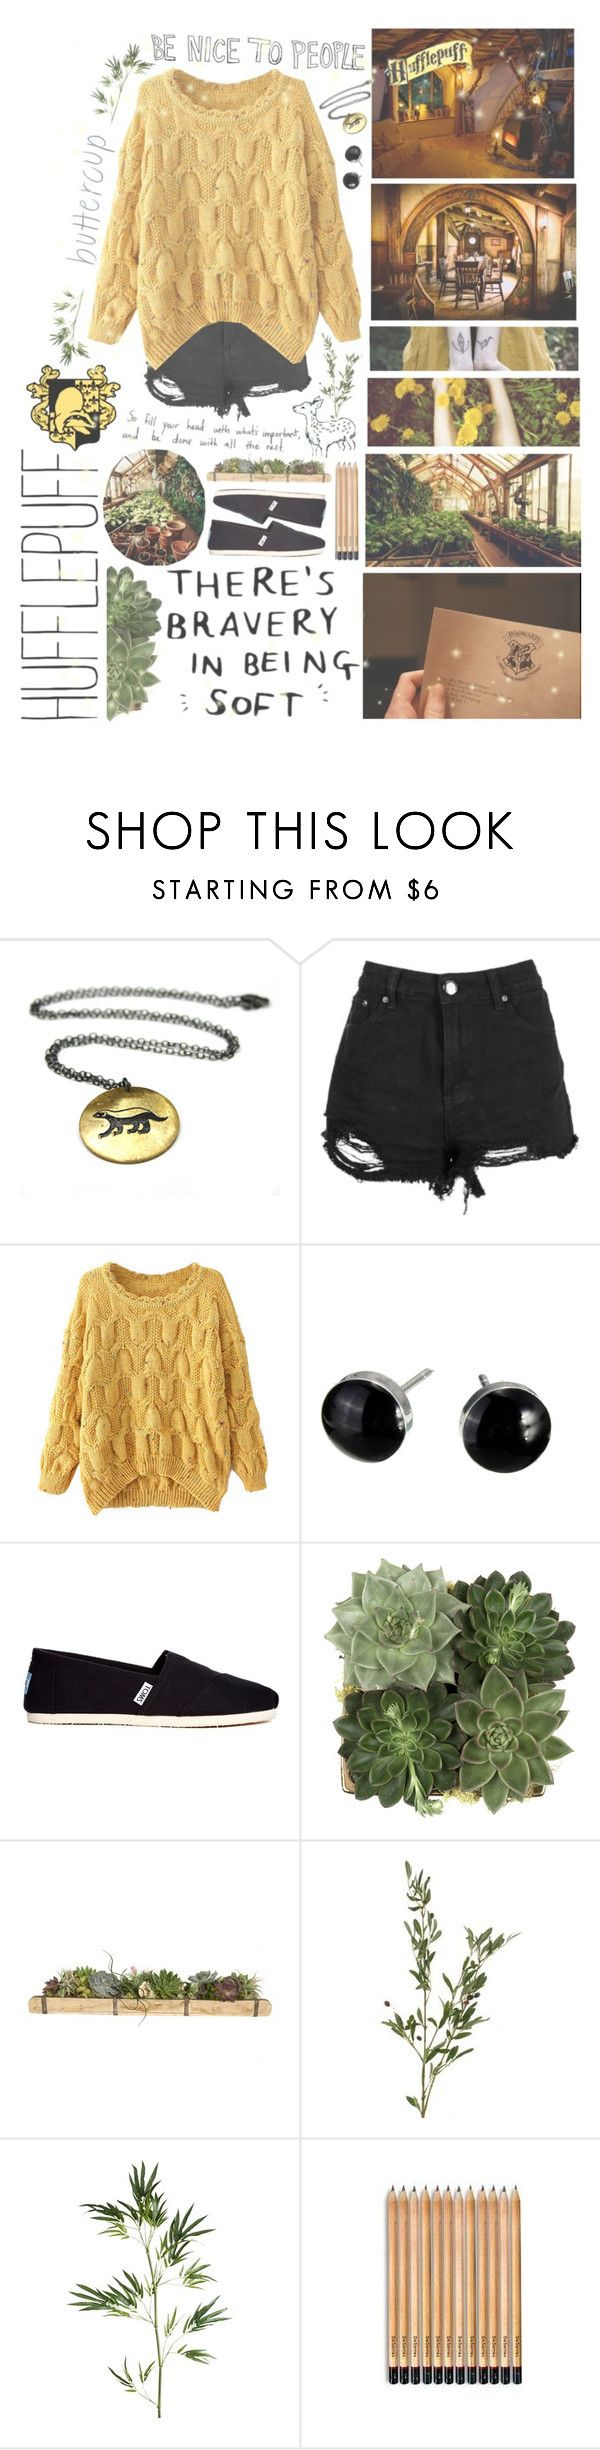 """""""Hufflepuff """" by winimae ❤ liked on Polyvore featuring ...Lost, Boohoo, Chicnova Fashion, TOMS, Jayson Home and Pier 1 Imports"""